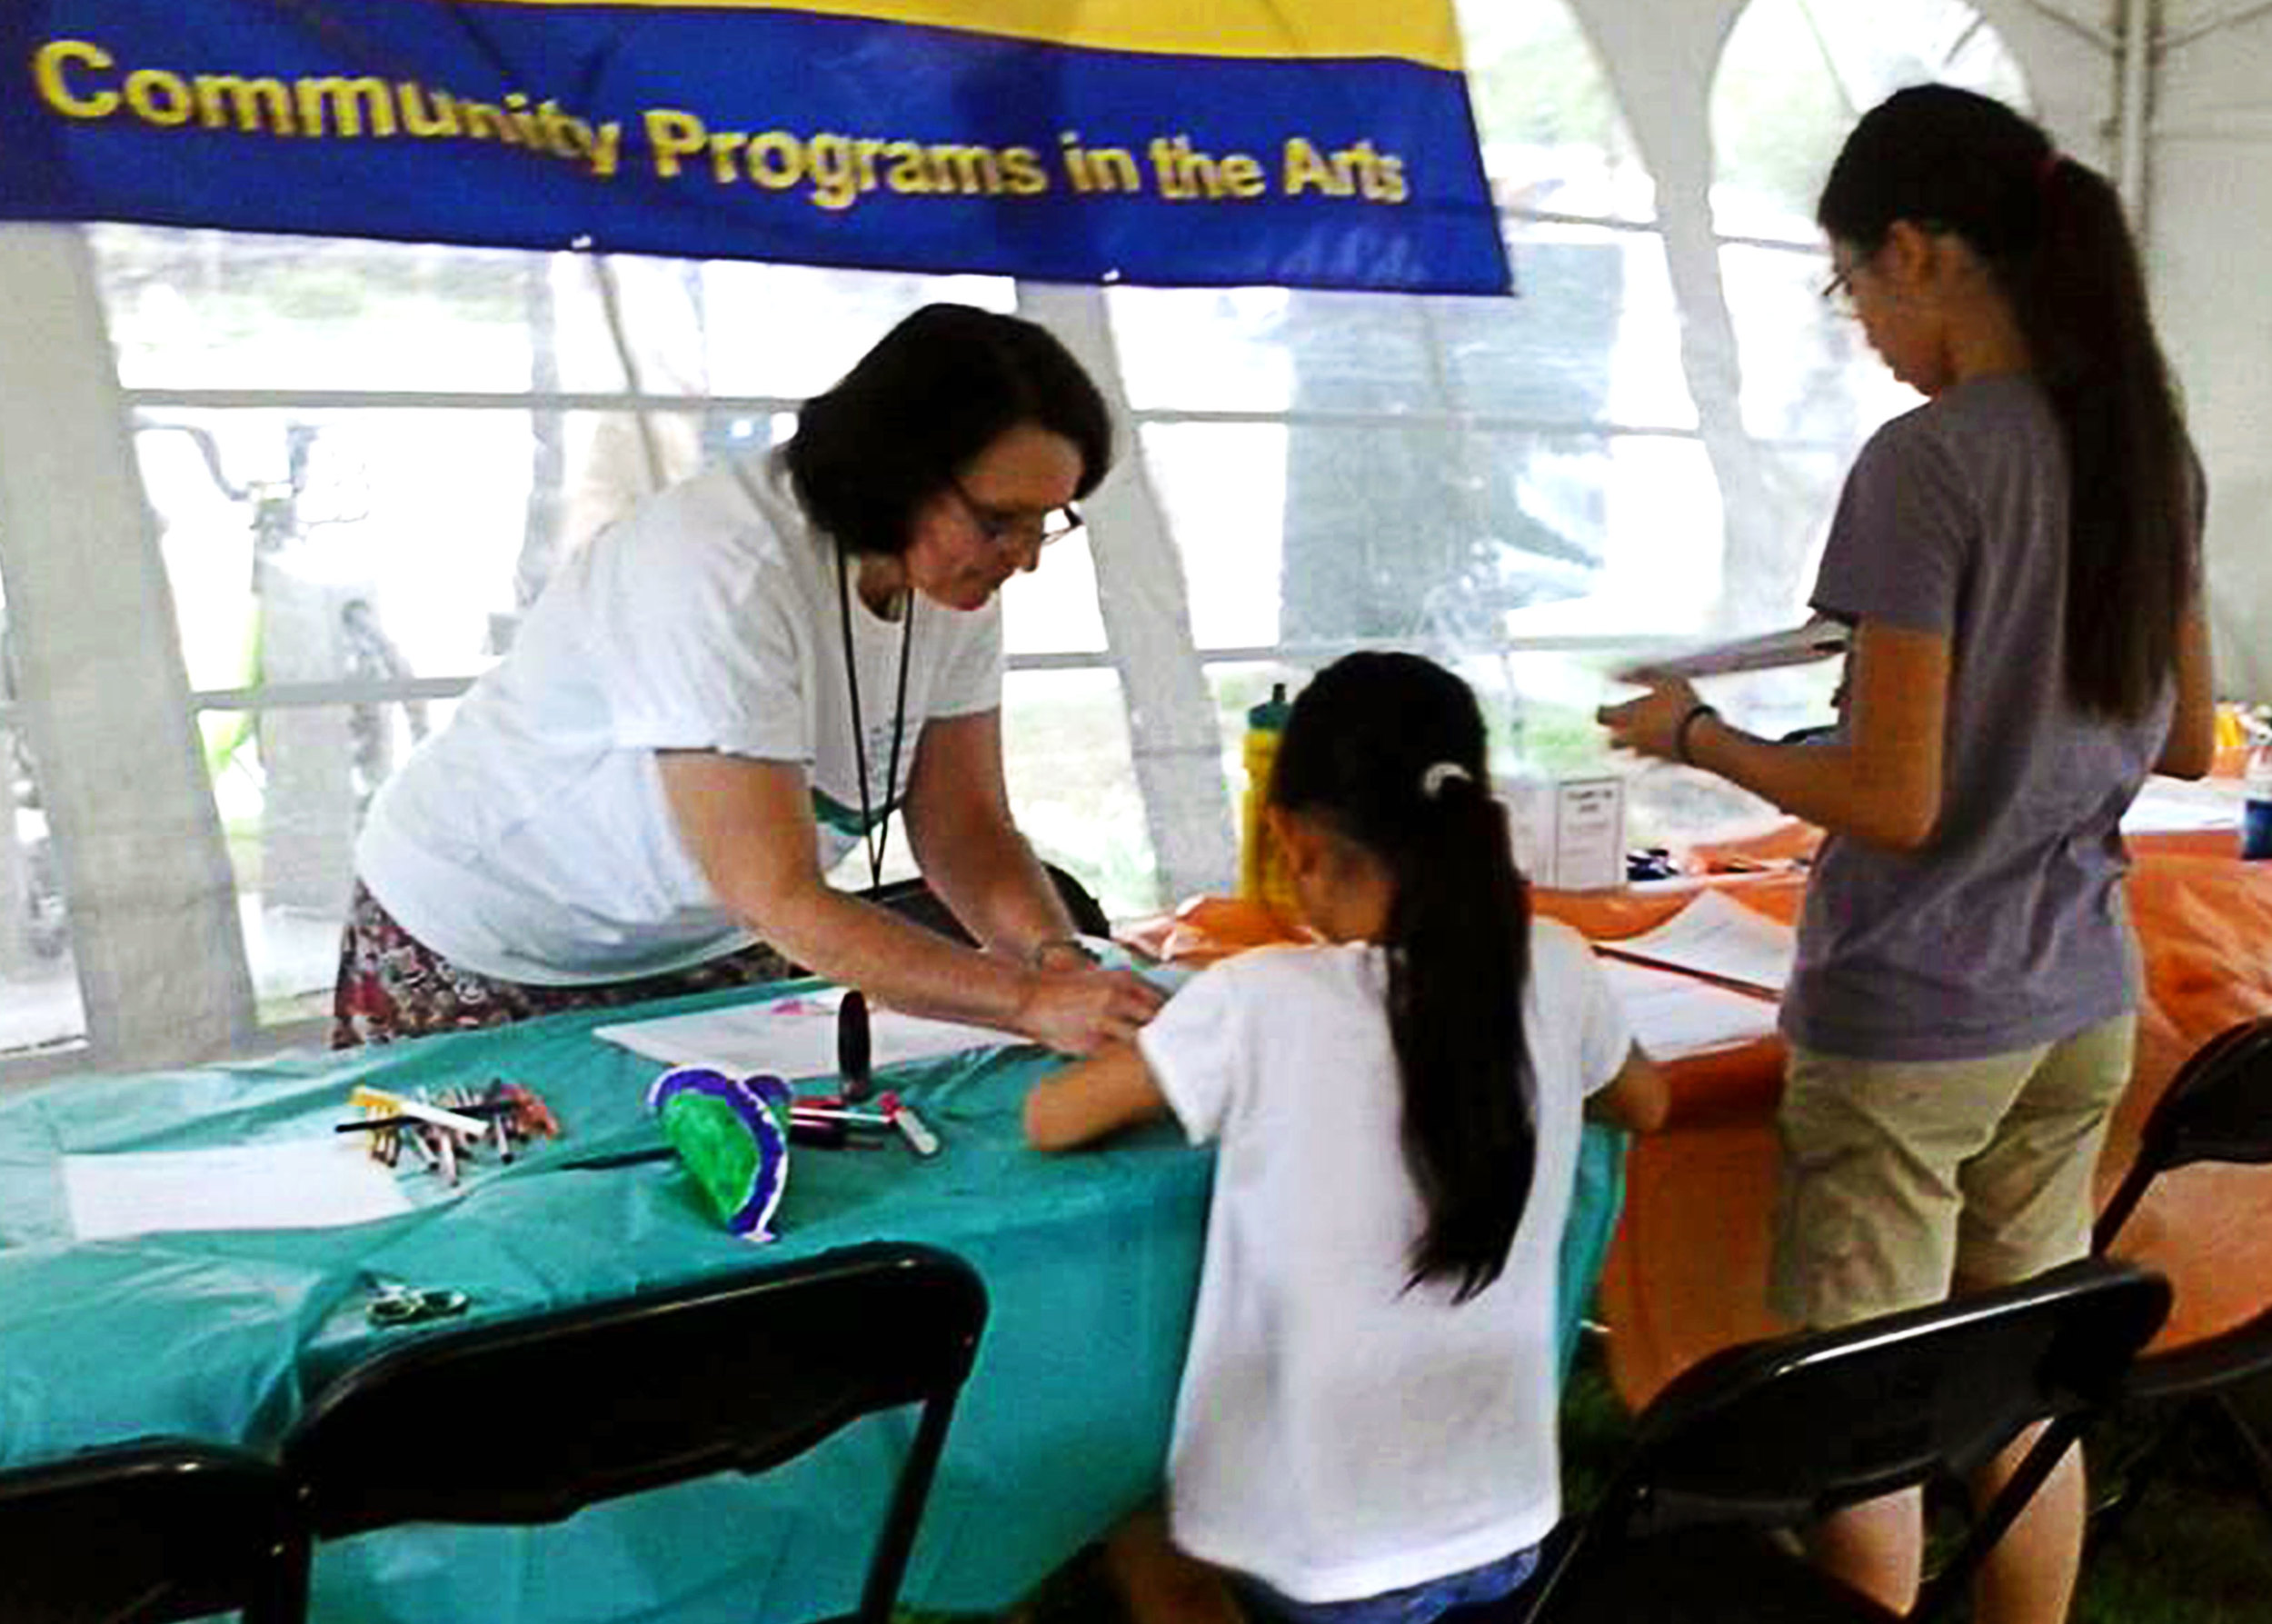 Making Art in the COMPAS art tent - flint hills 2013